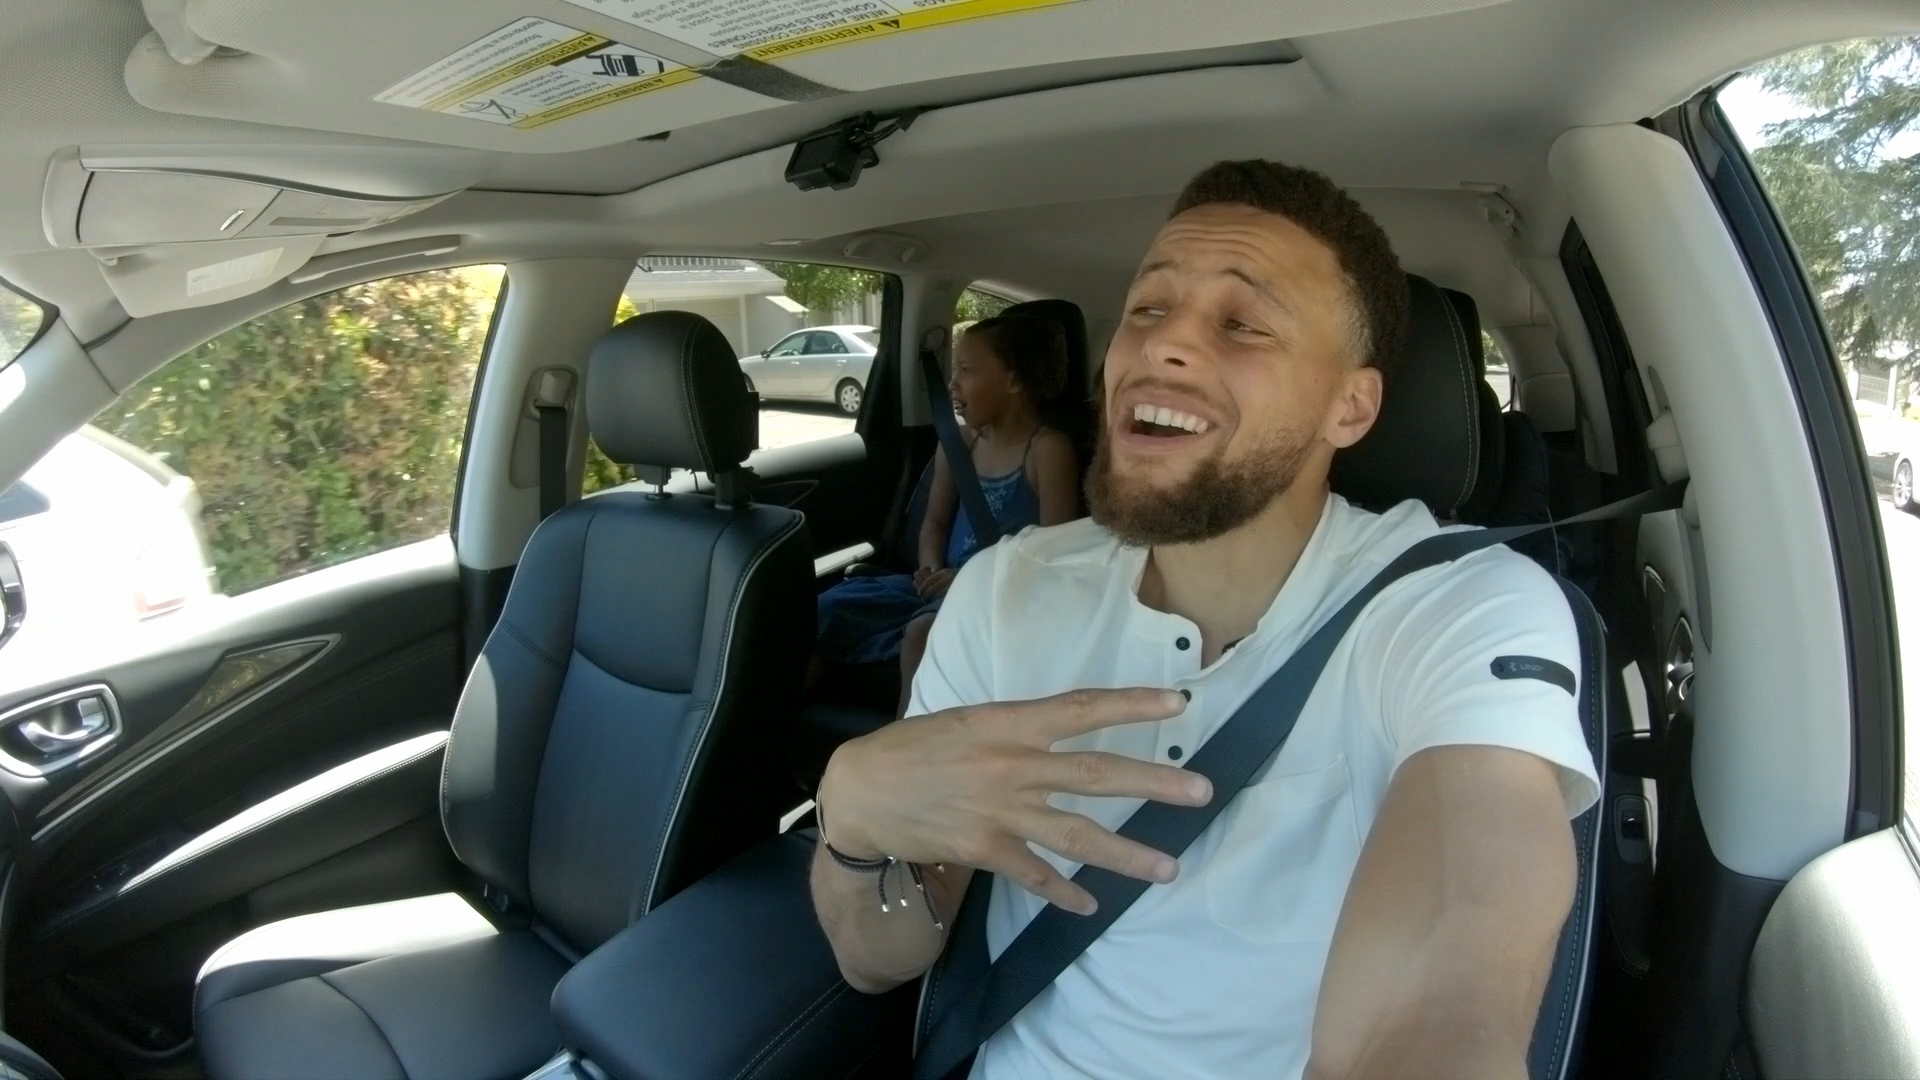 SC_INF-Carpool_Karaoke_FINAL_CUT_BAW_v3.1-EP-1-0-02-44-02-3.jpg